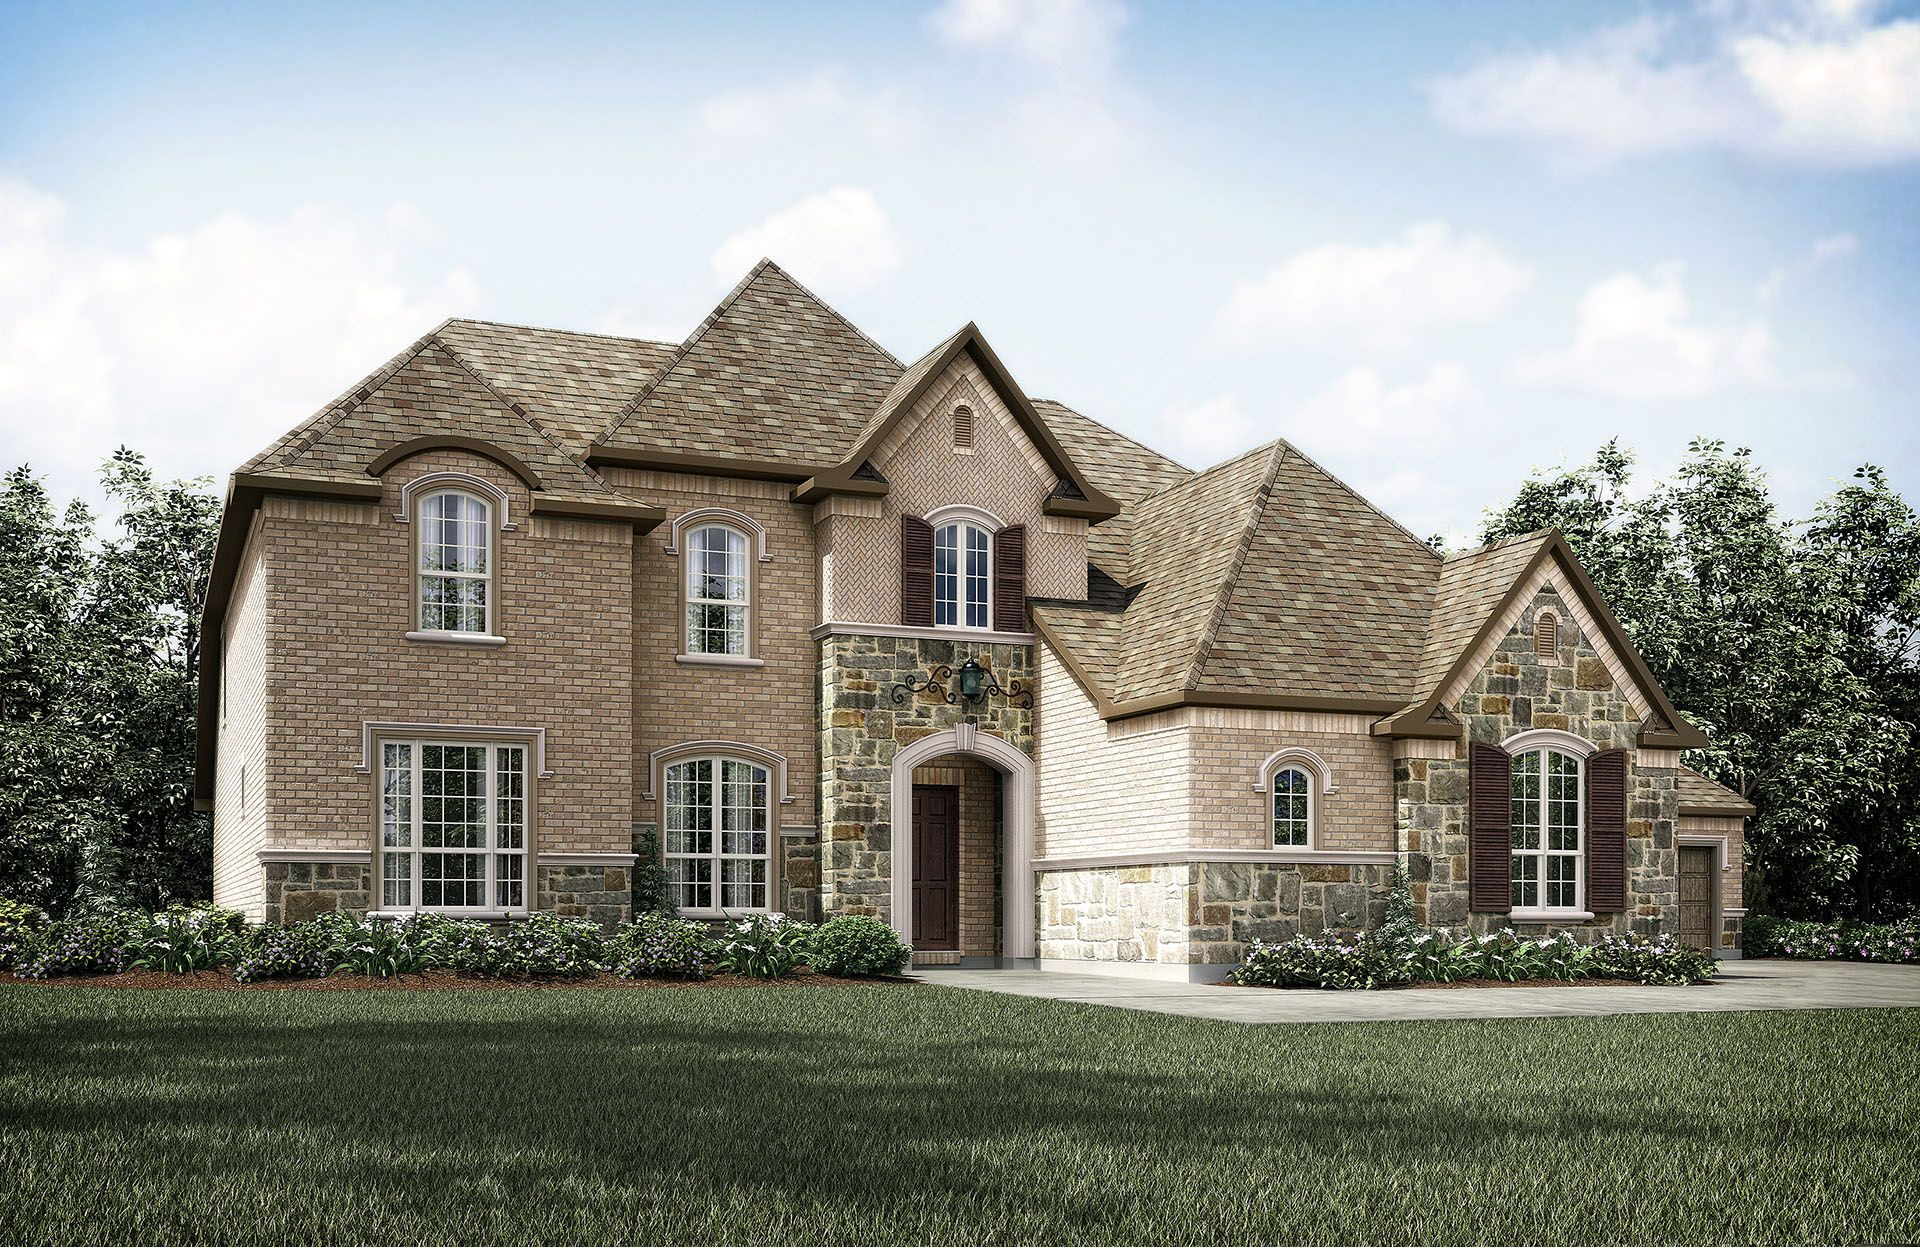 Single Family for Active at Retreat At Augusta Pines - Elmsdale 24806 Pacific Dunes Ln. Spring, Texas 77389 United States